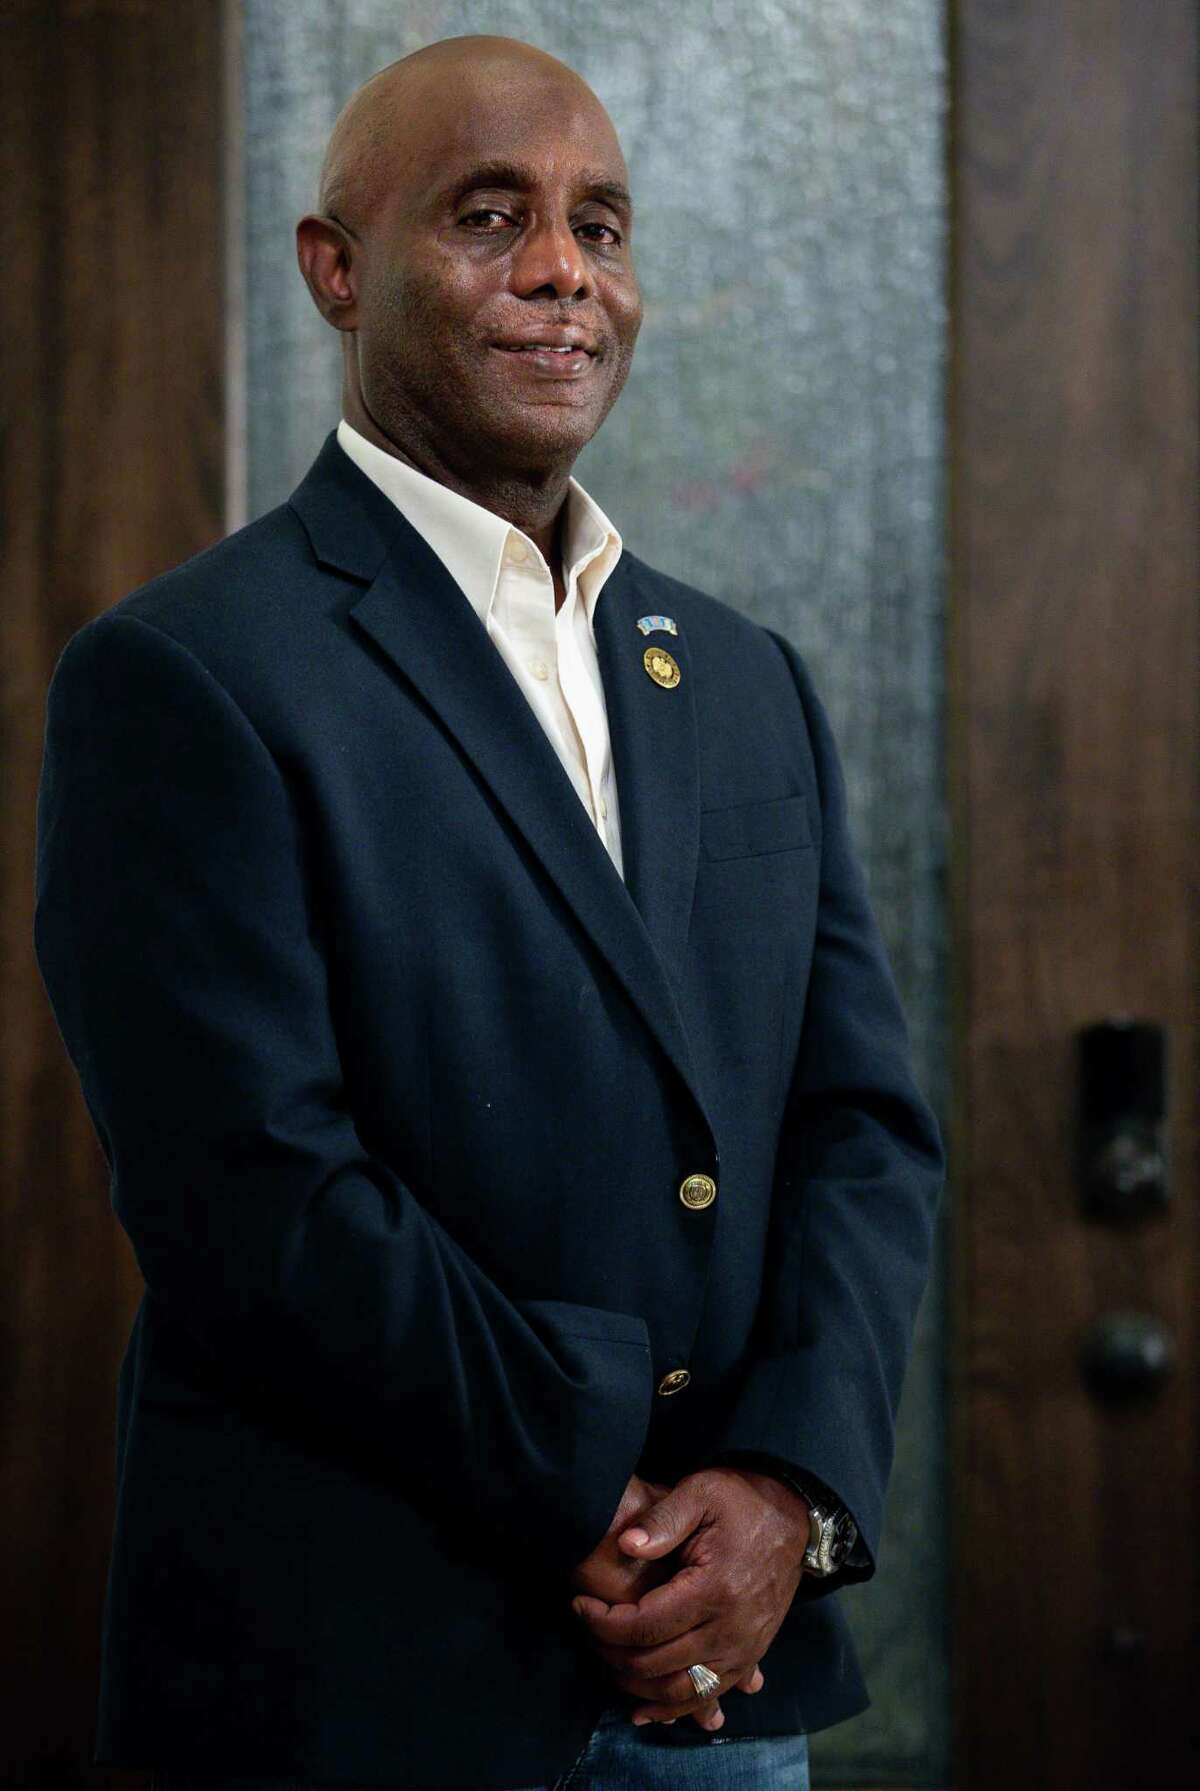 Eric Fagan, who was elected as the first Black sheriff in Fort Bend County since Reconstruction, poses for a photograph inside his home Wednesday, Nov. 4, 2020, in Pearland, Texas.